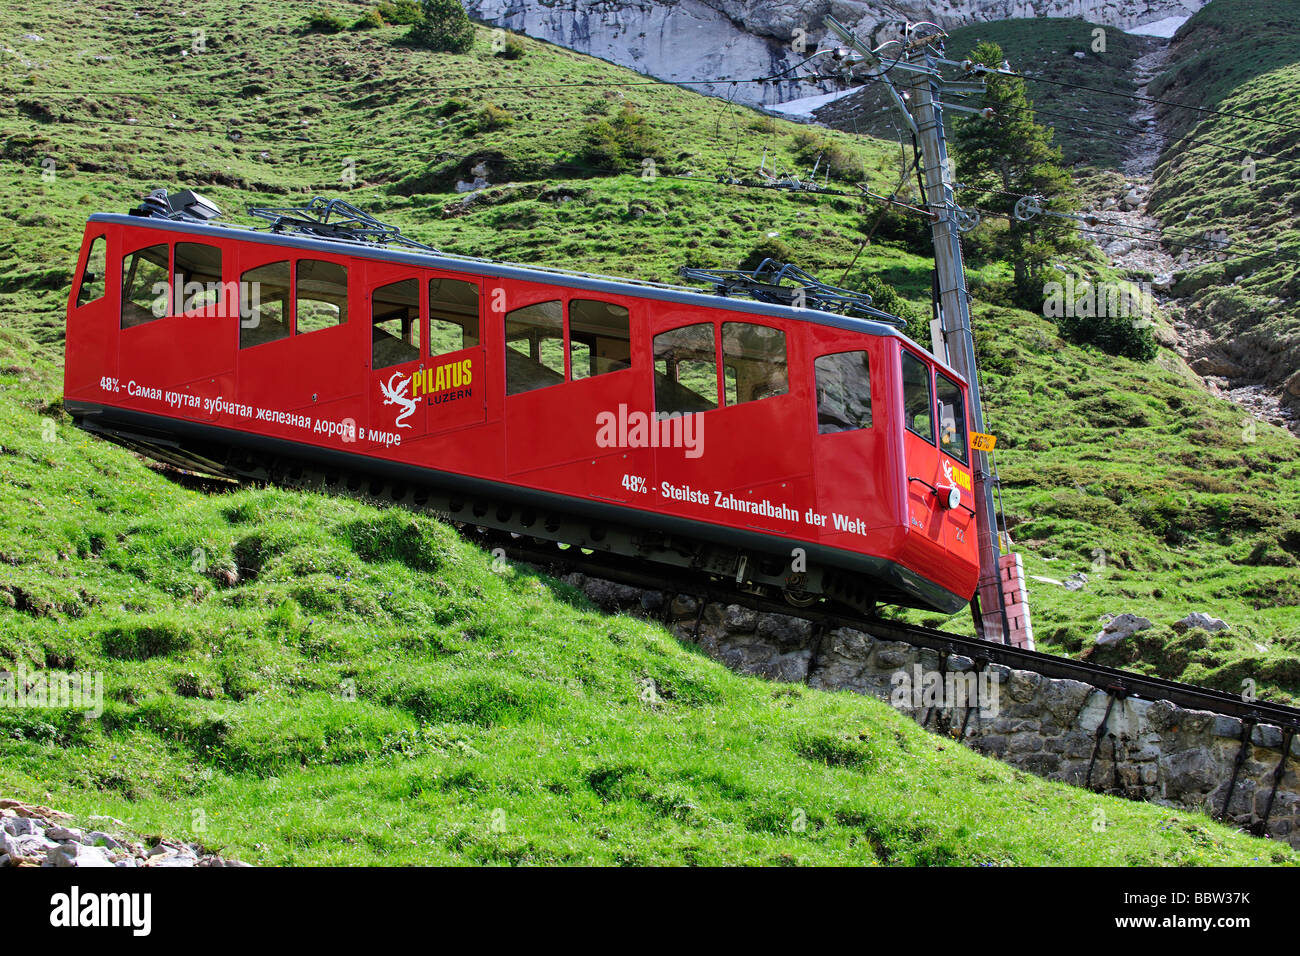 Cogwheel railway to Mount Pilatus, a recreational mountain near Lucerne, the 48% gradient making it the steepest - Stock Image